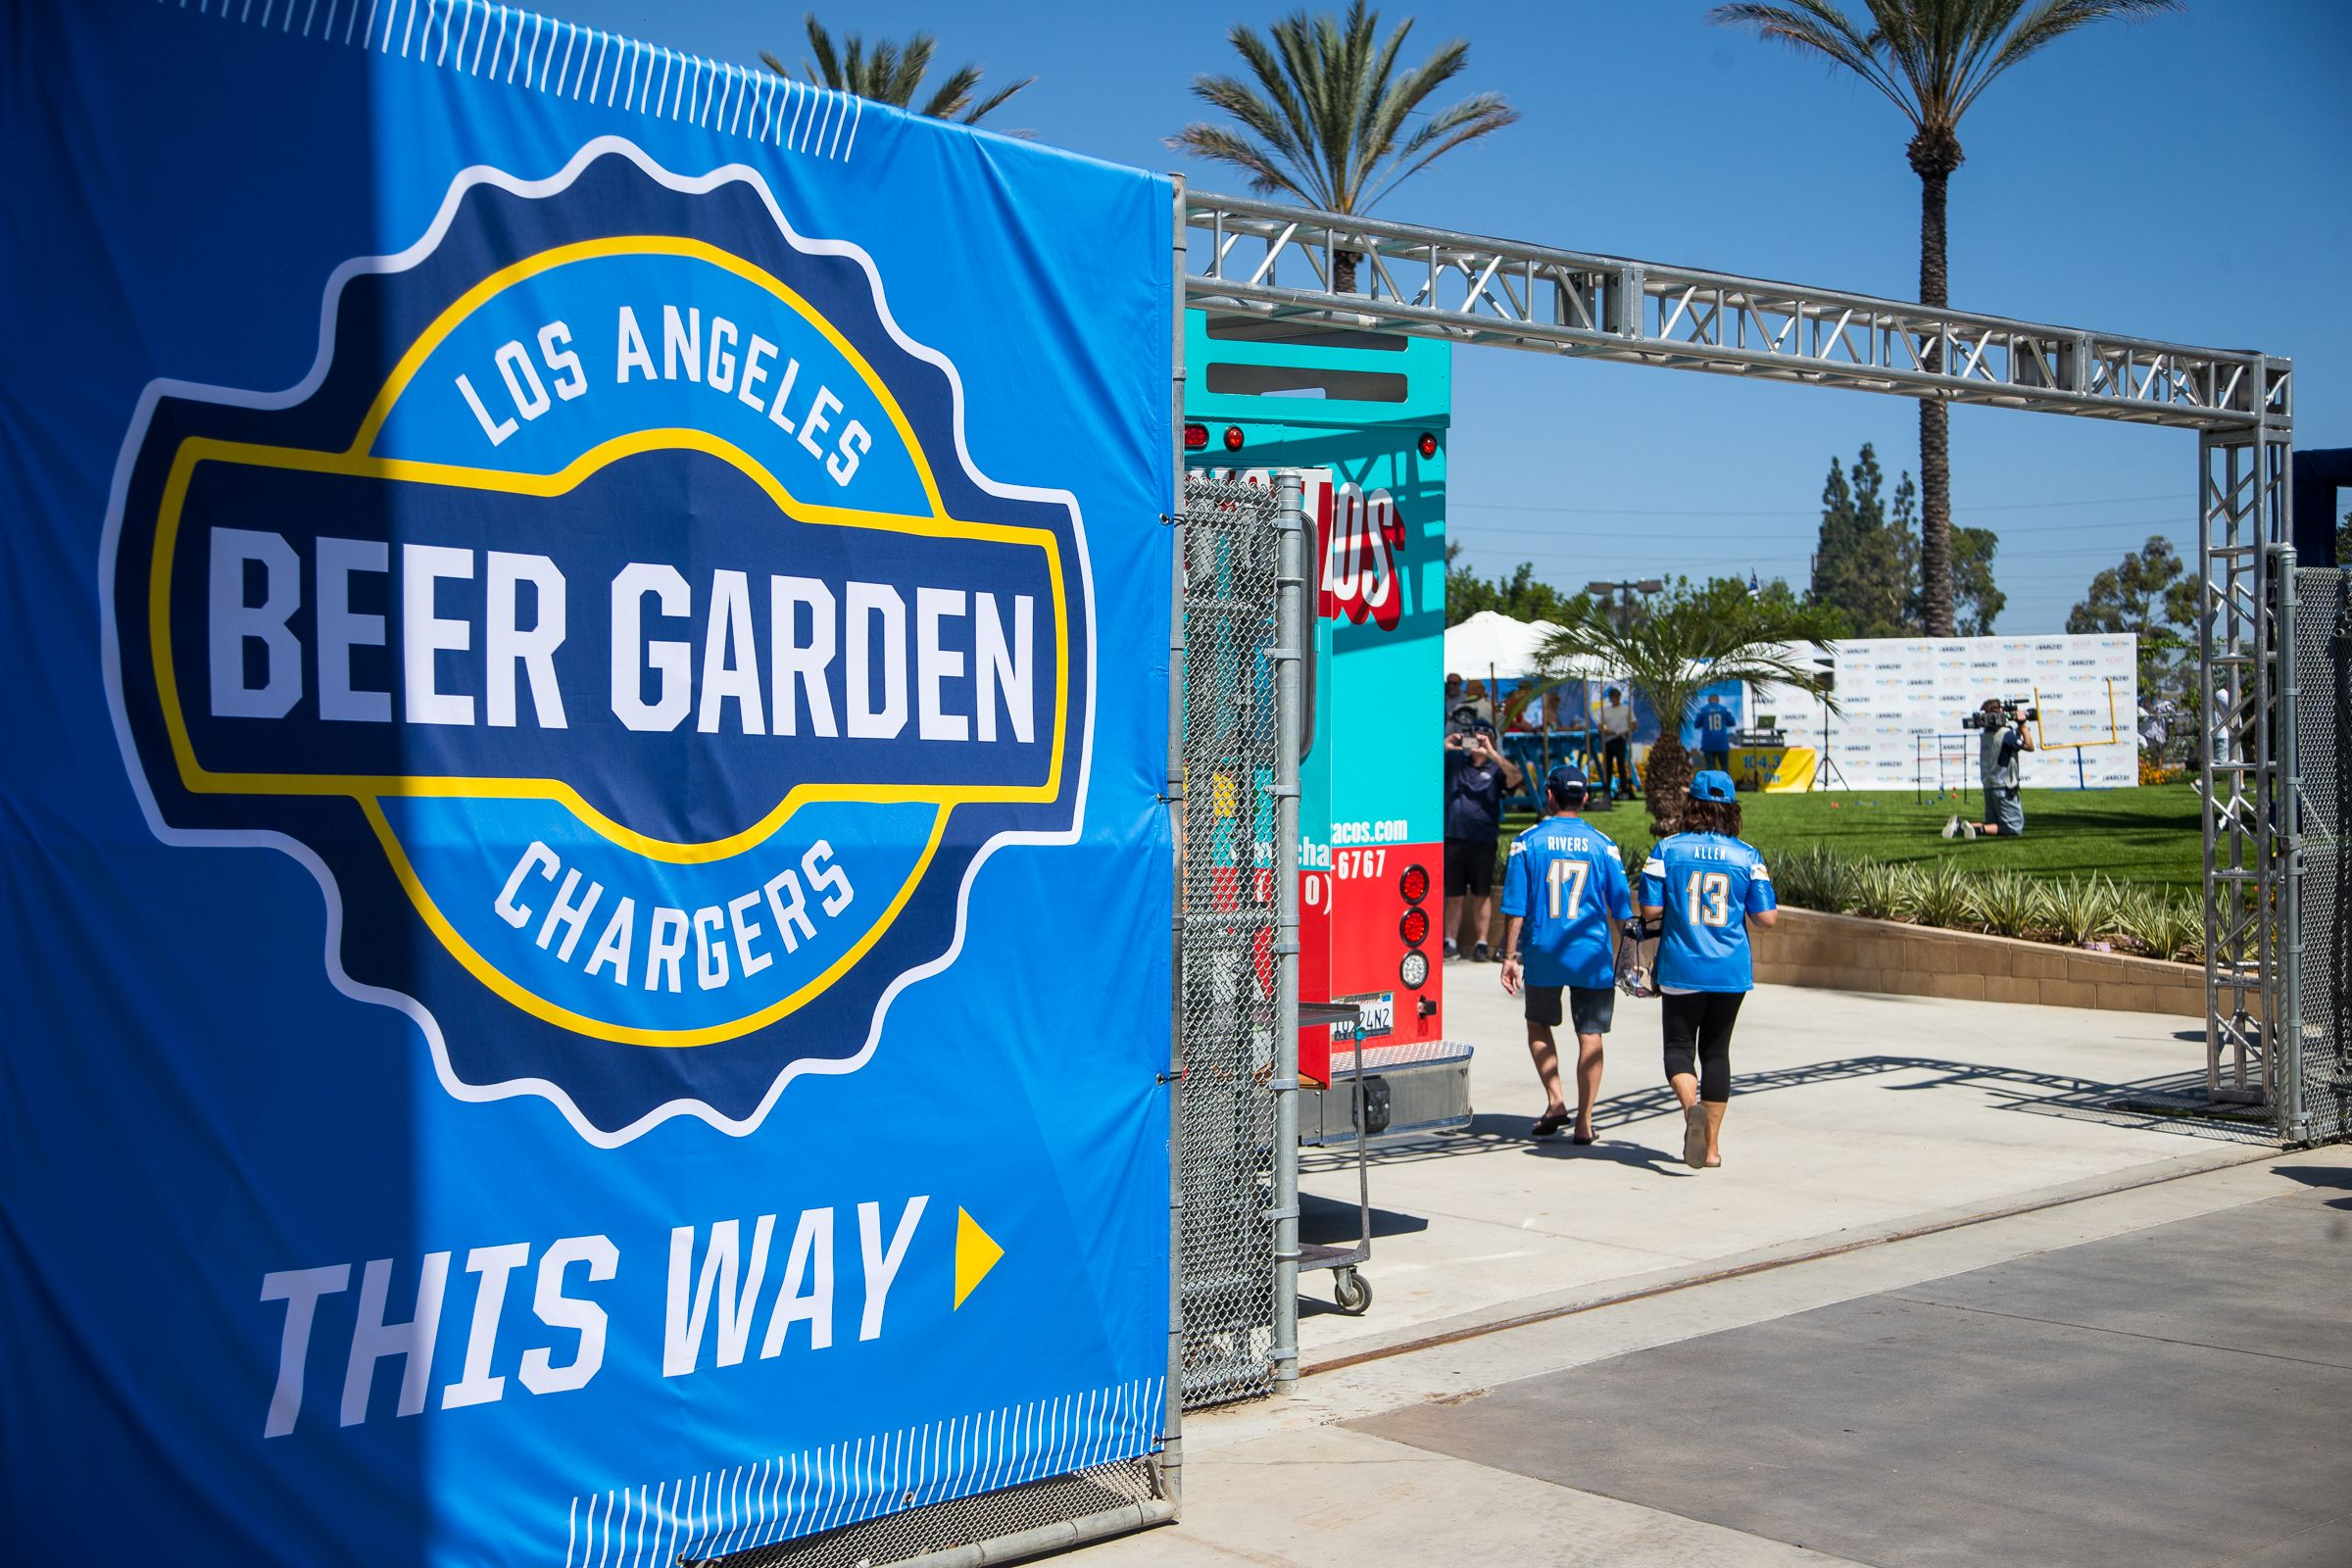 Chargers Beer Garden and Fun Zone